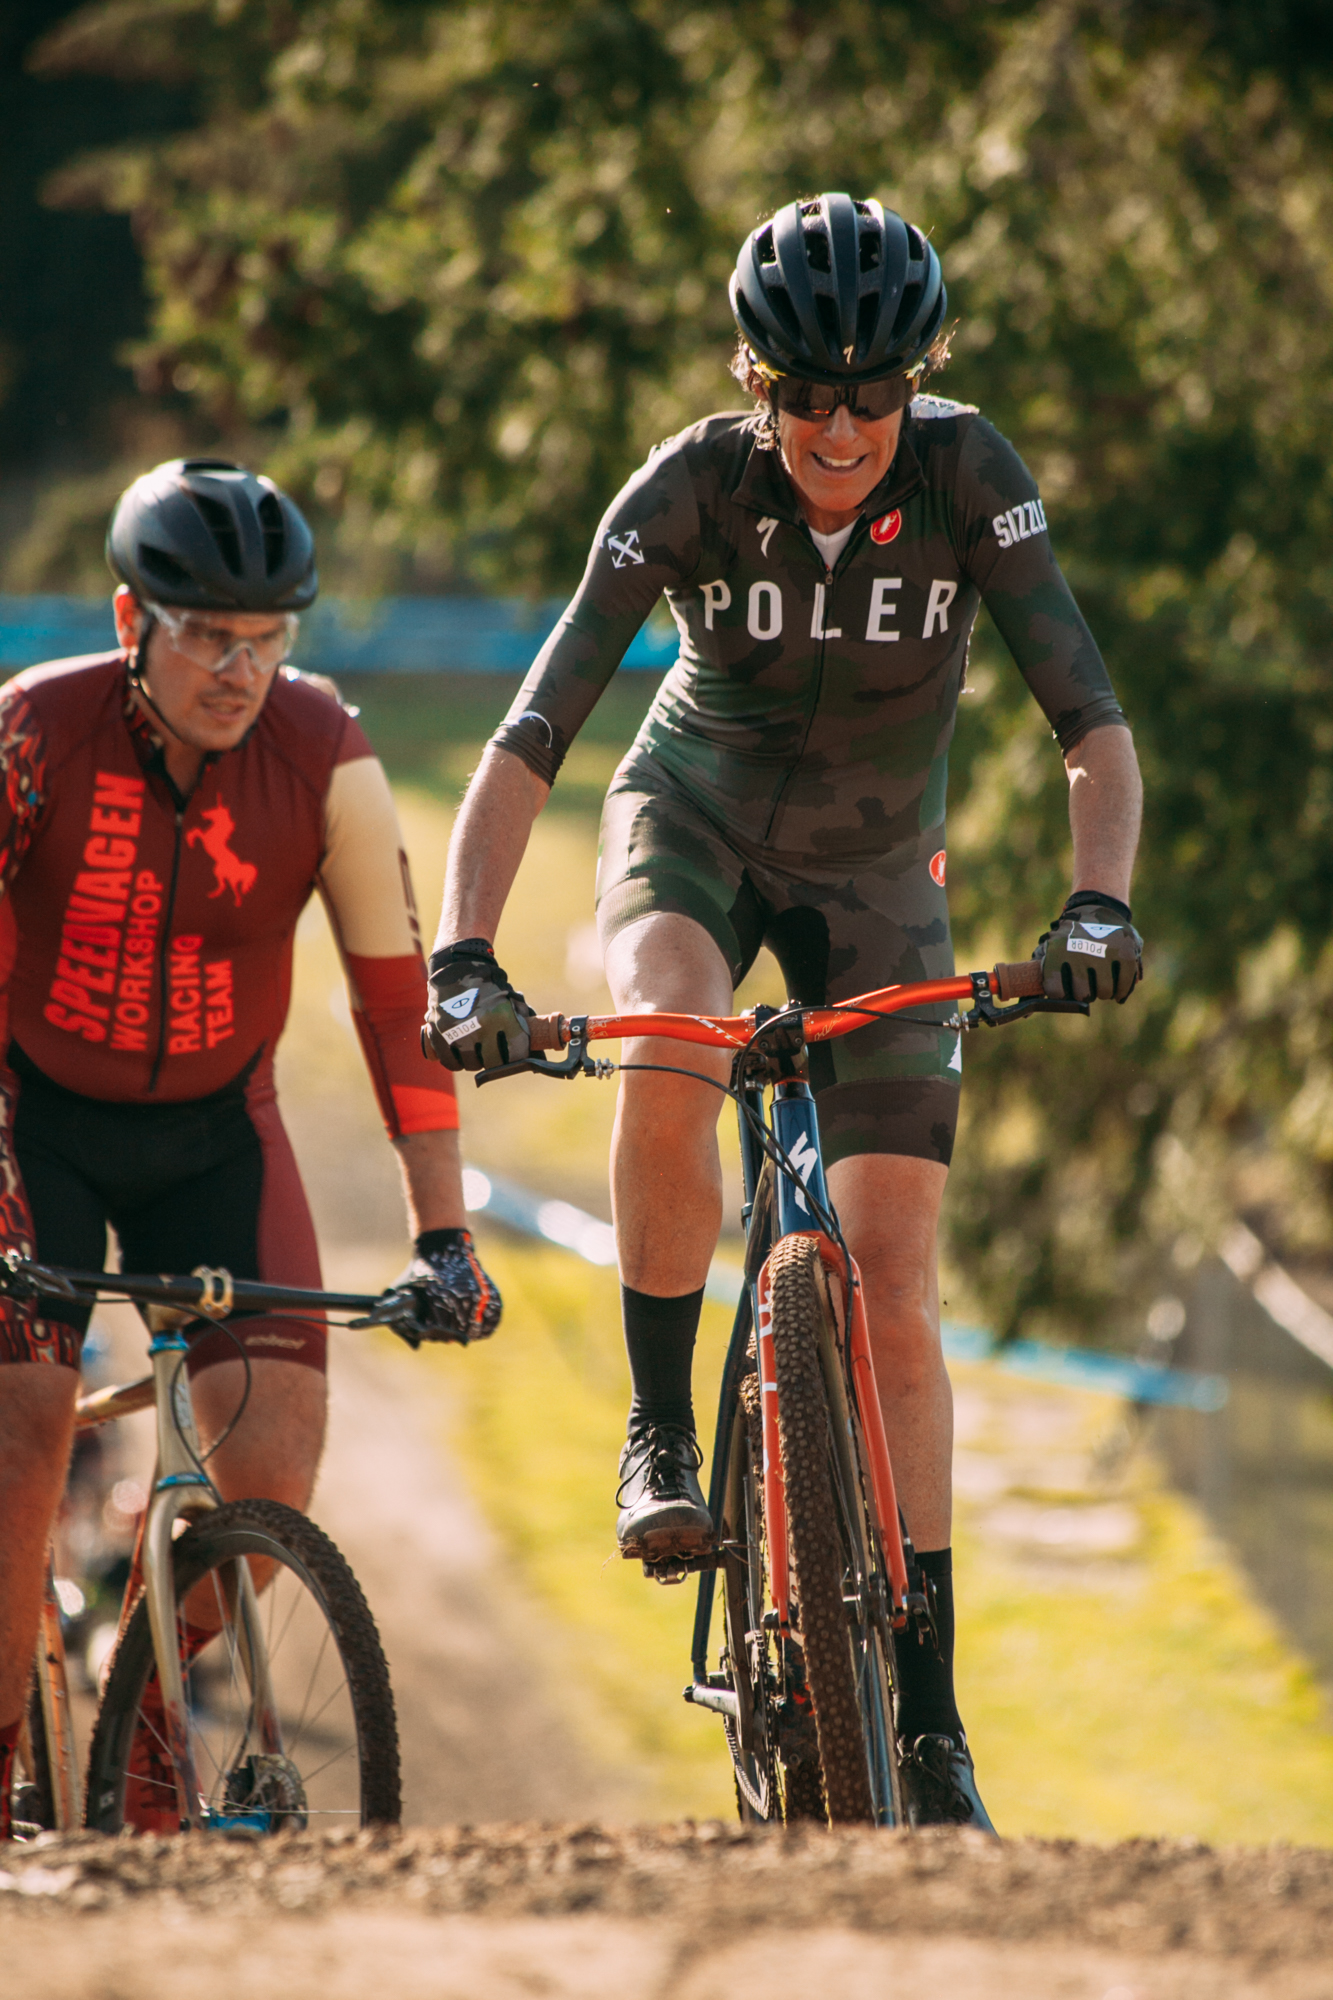 Cyclocross18_CCCX_RainierHS-188-mettlecycling.jpg